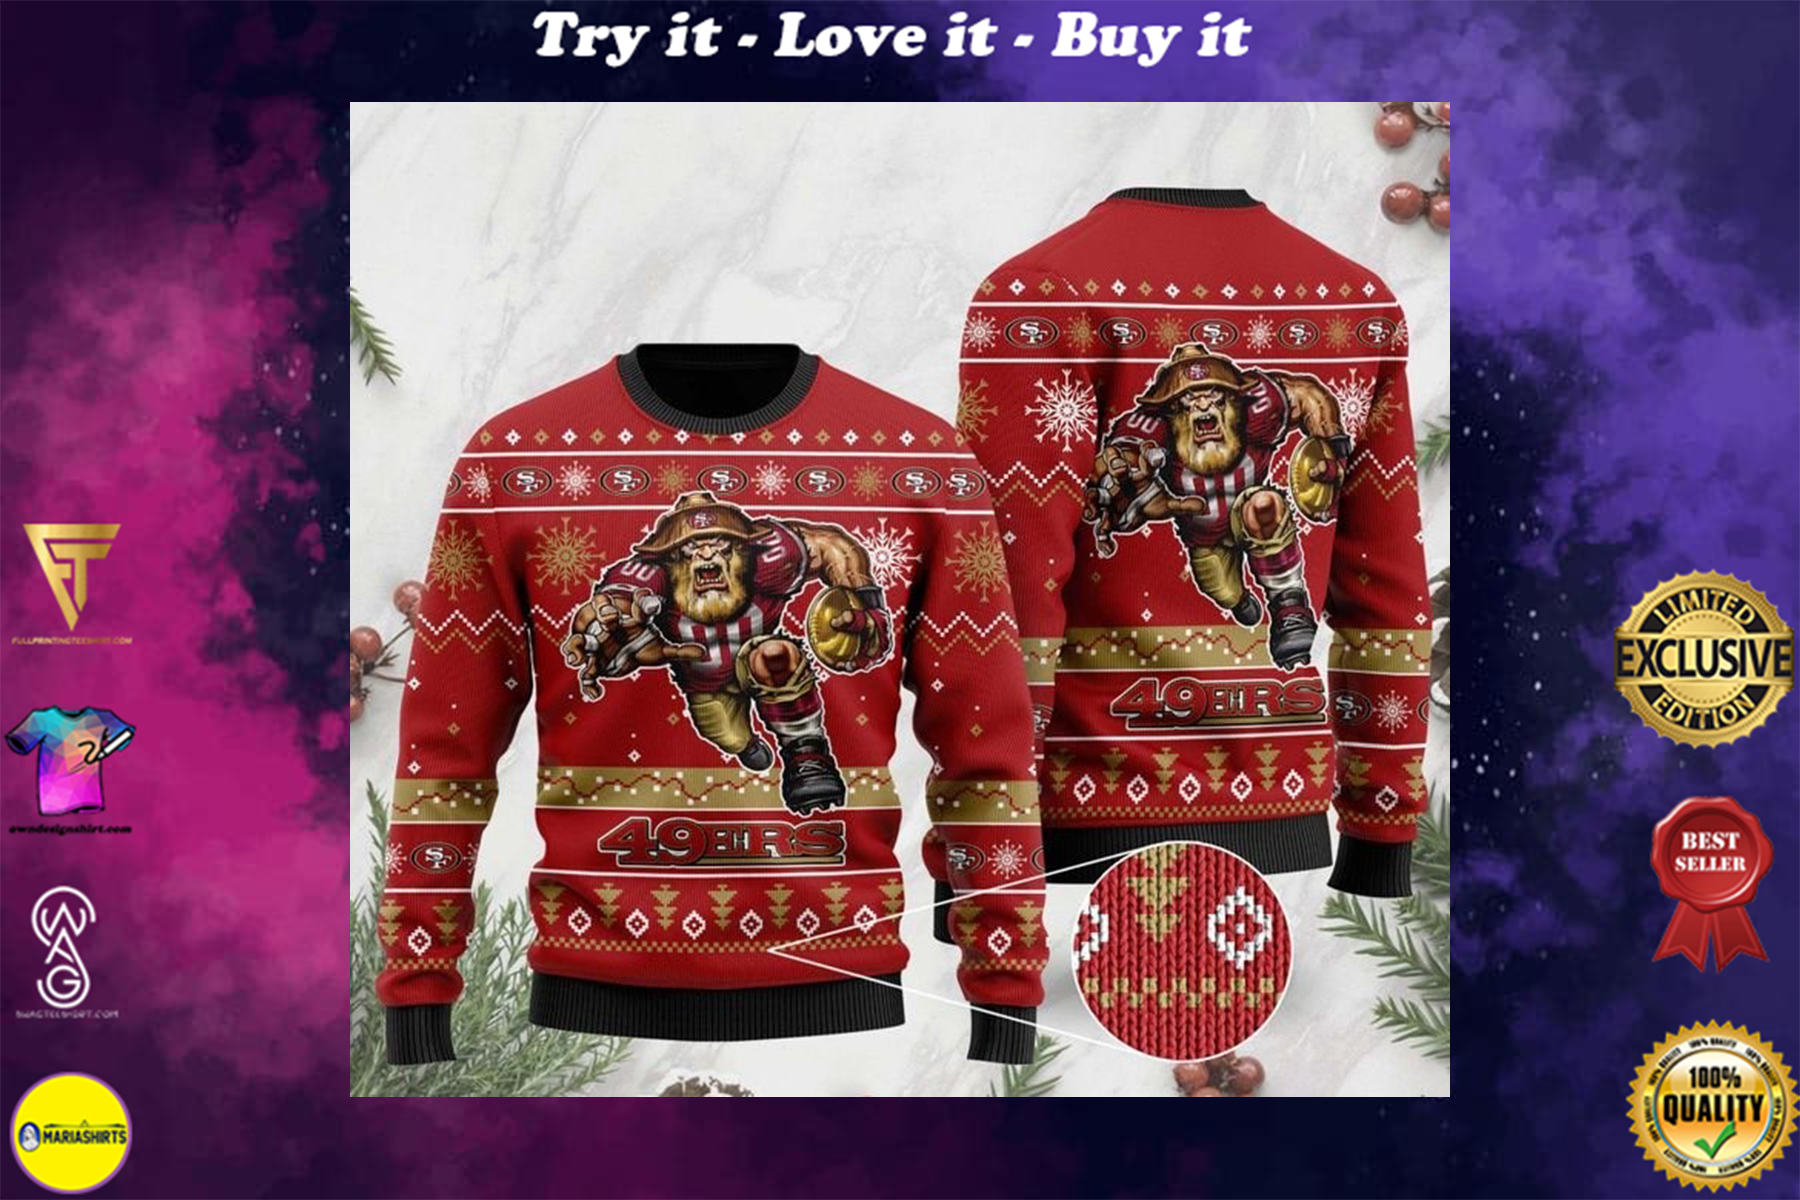 [highest selling] the san francisco 49ers football team christmas ugly sweater - maria